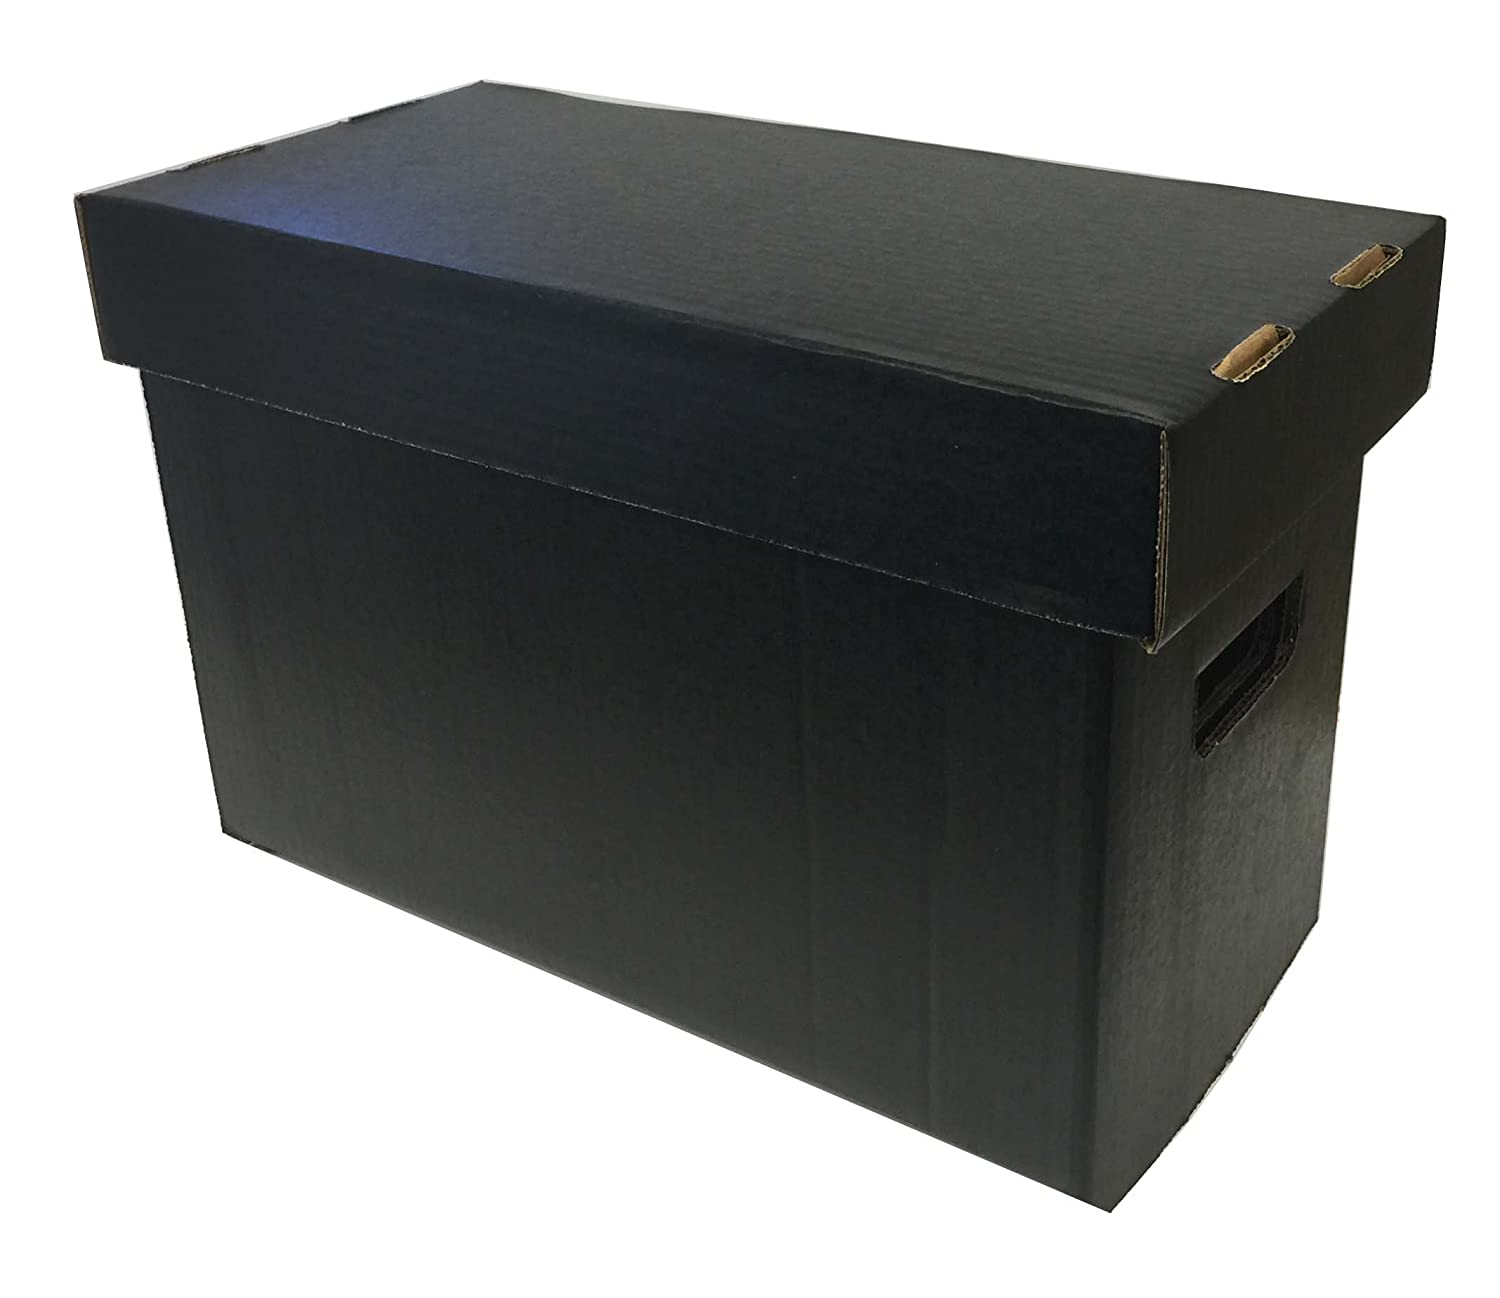 (5) Max Pro SHORT Colored Comic Storage Box - Holds 150 - 175 Comic Books - BLACK Max Protection